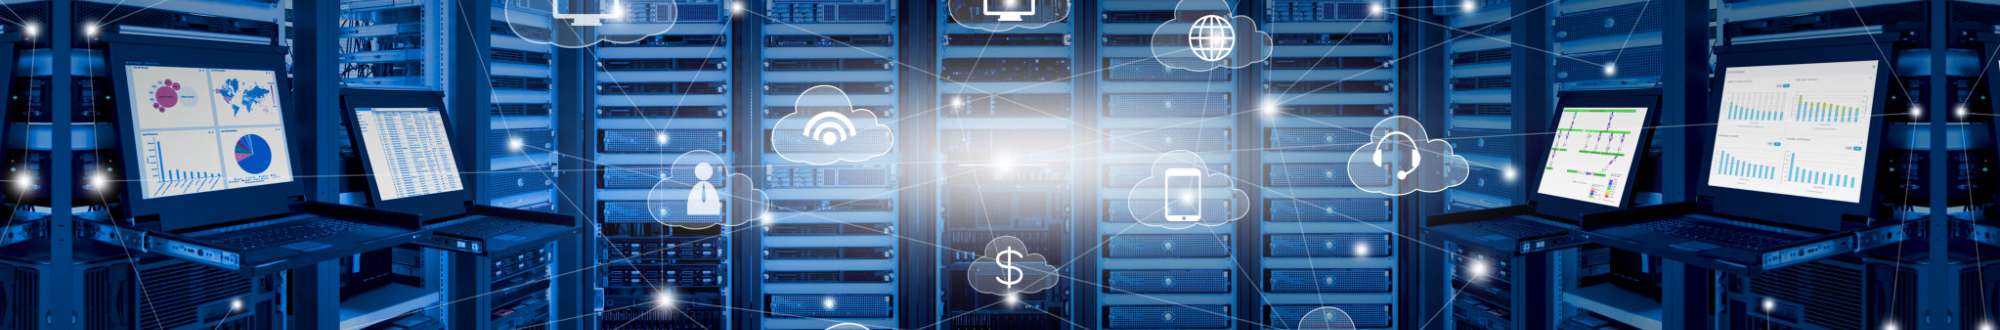 Internet data center and cloud services concept